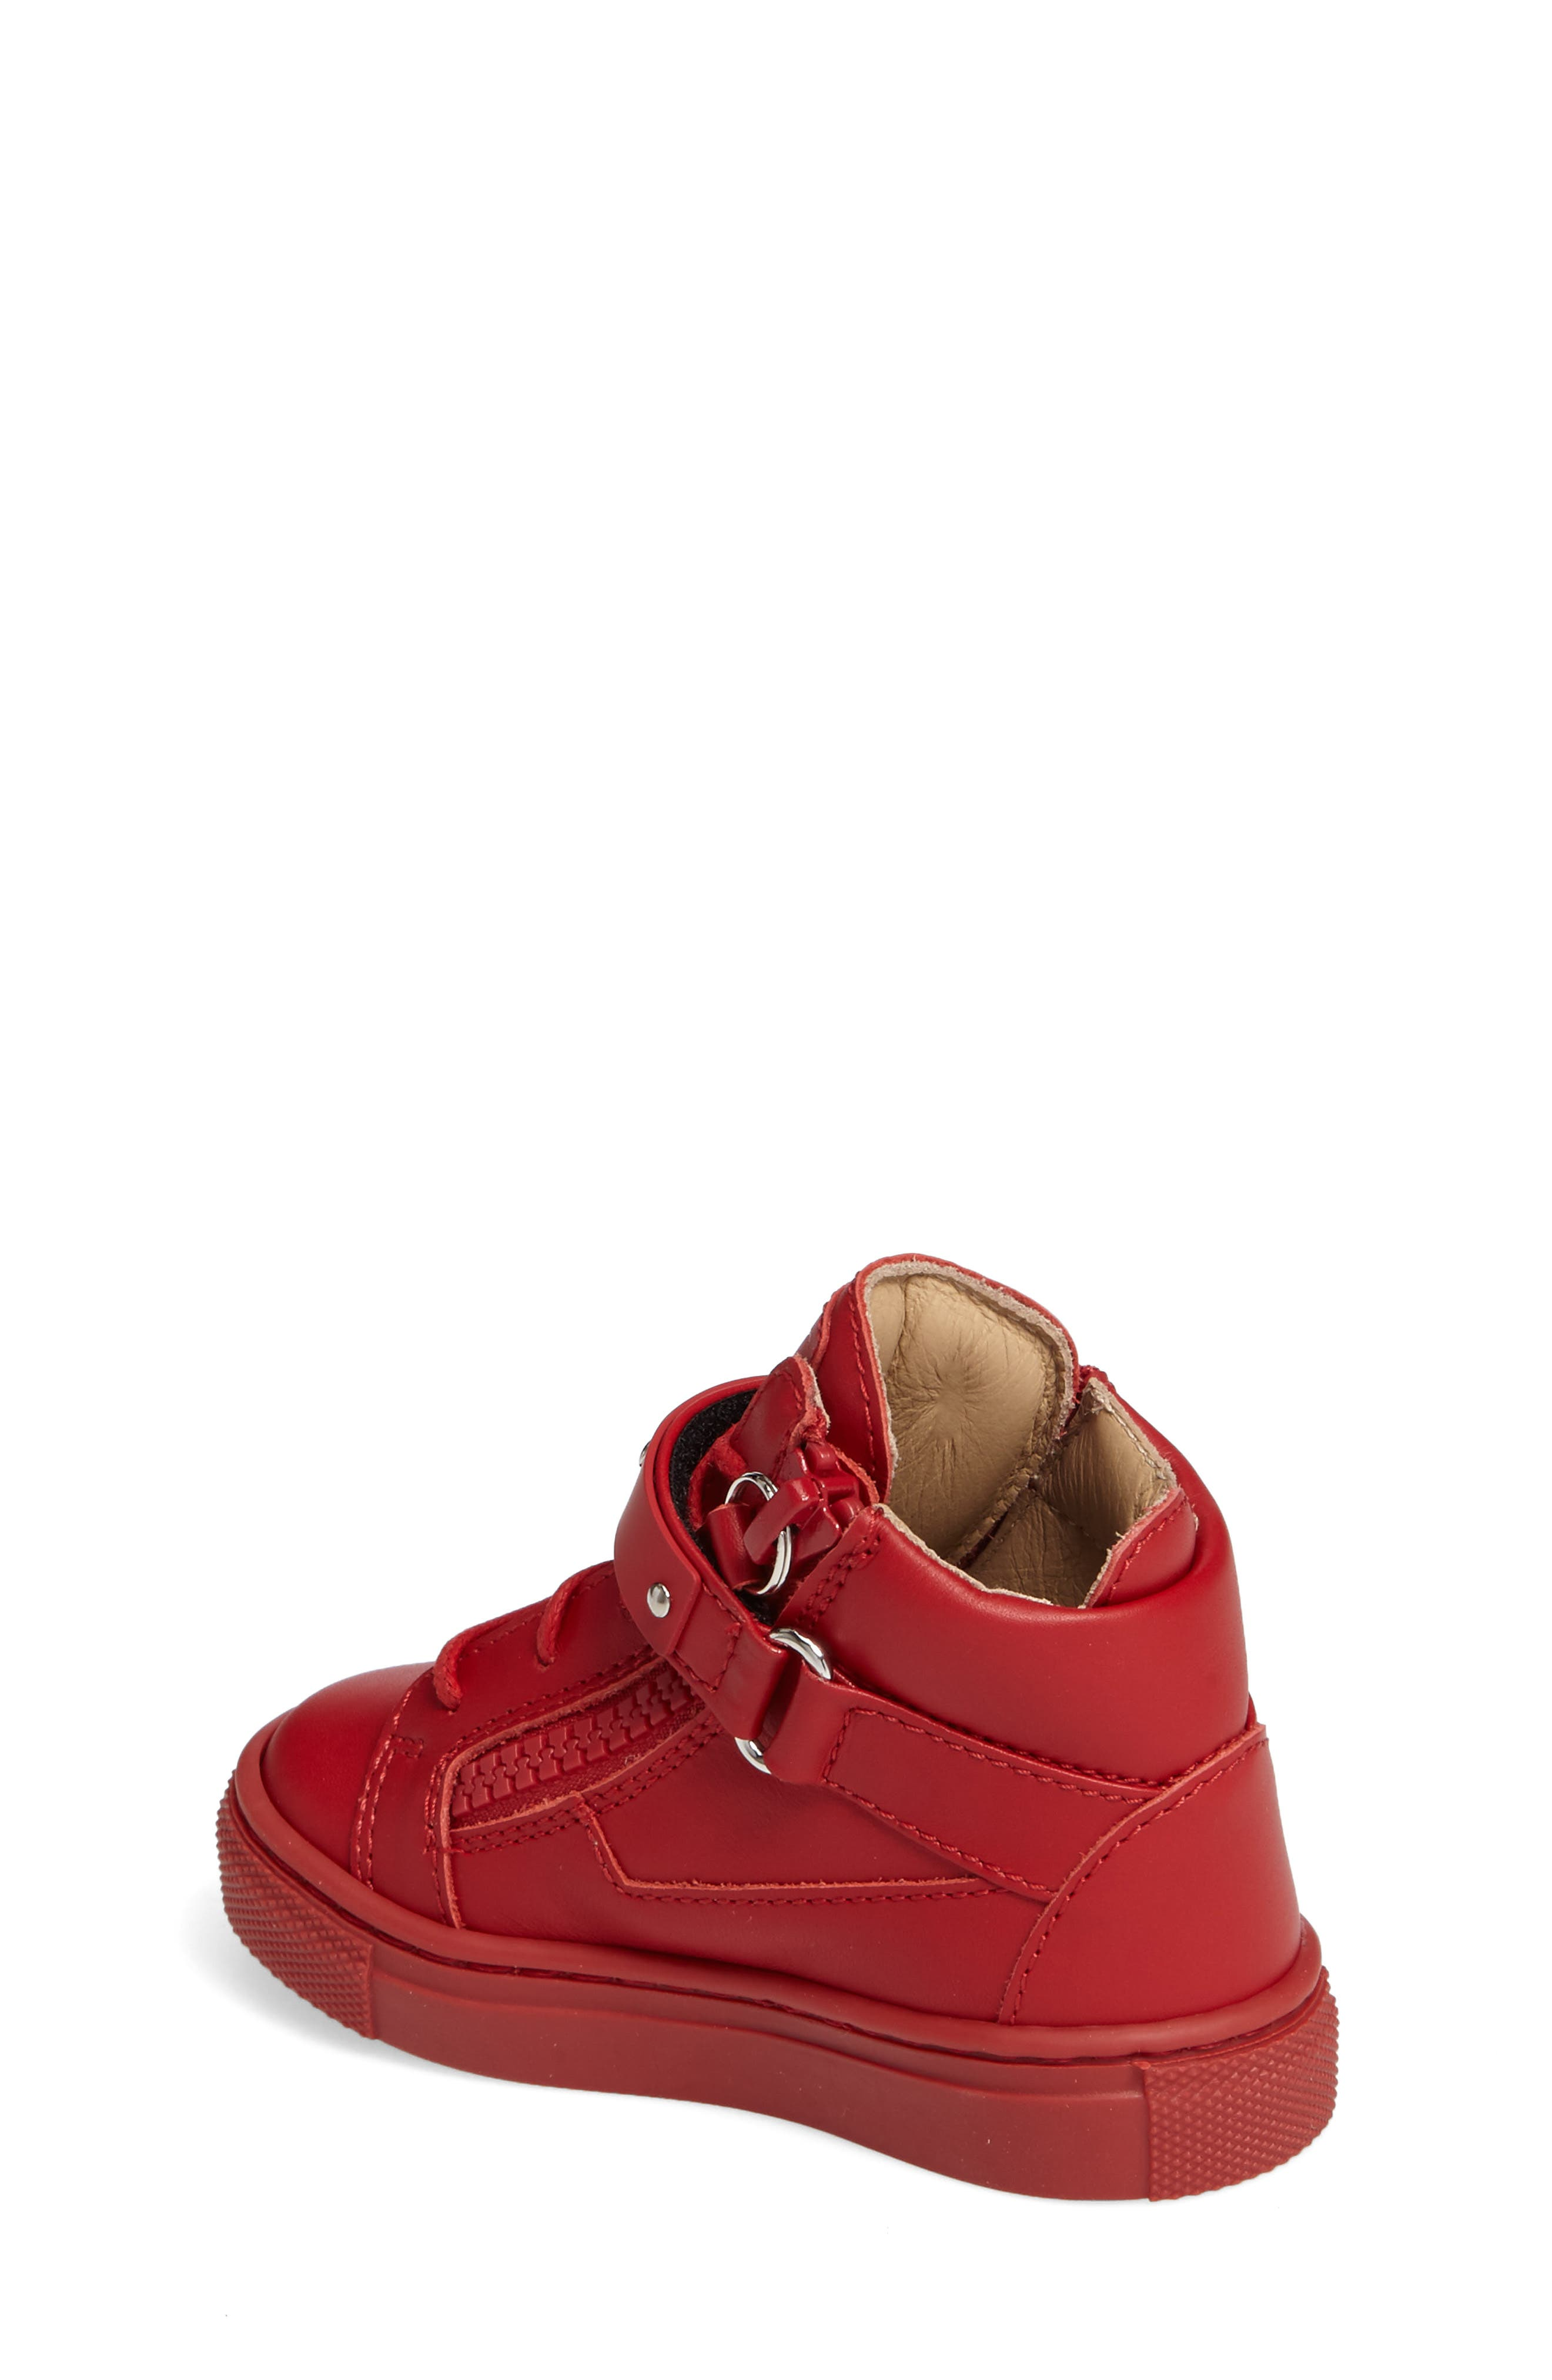 Taylor Junior High Top Sneaker,                             Alternate thumbnail 2, color,                             Red Leather